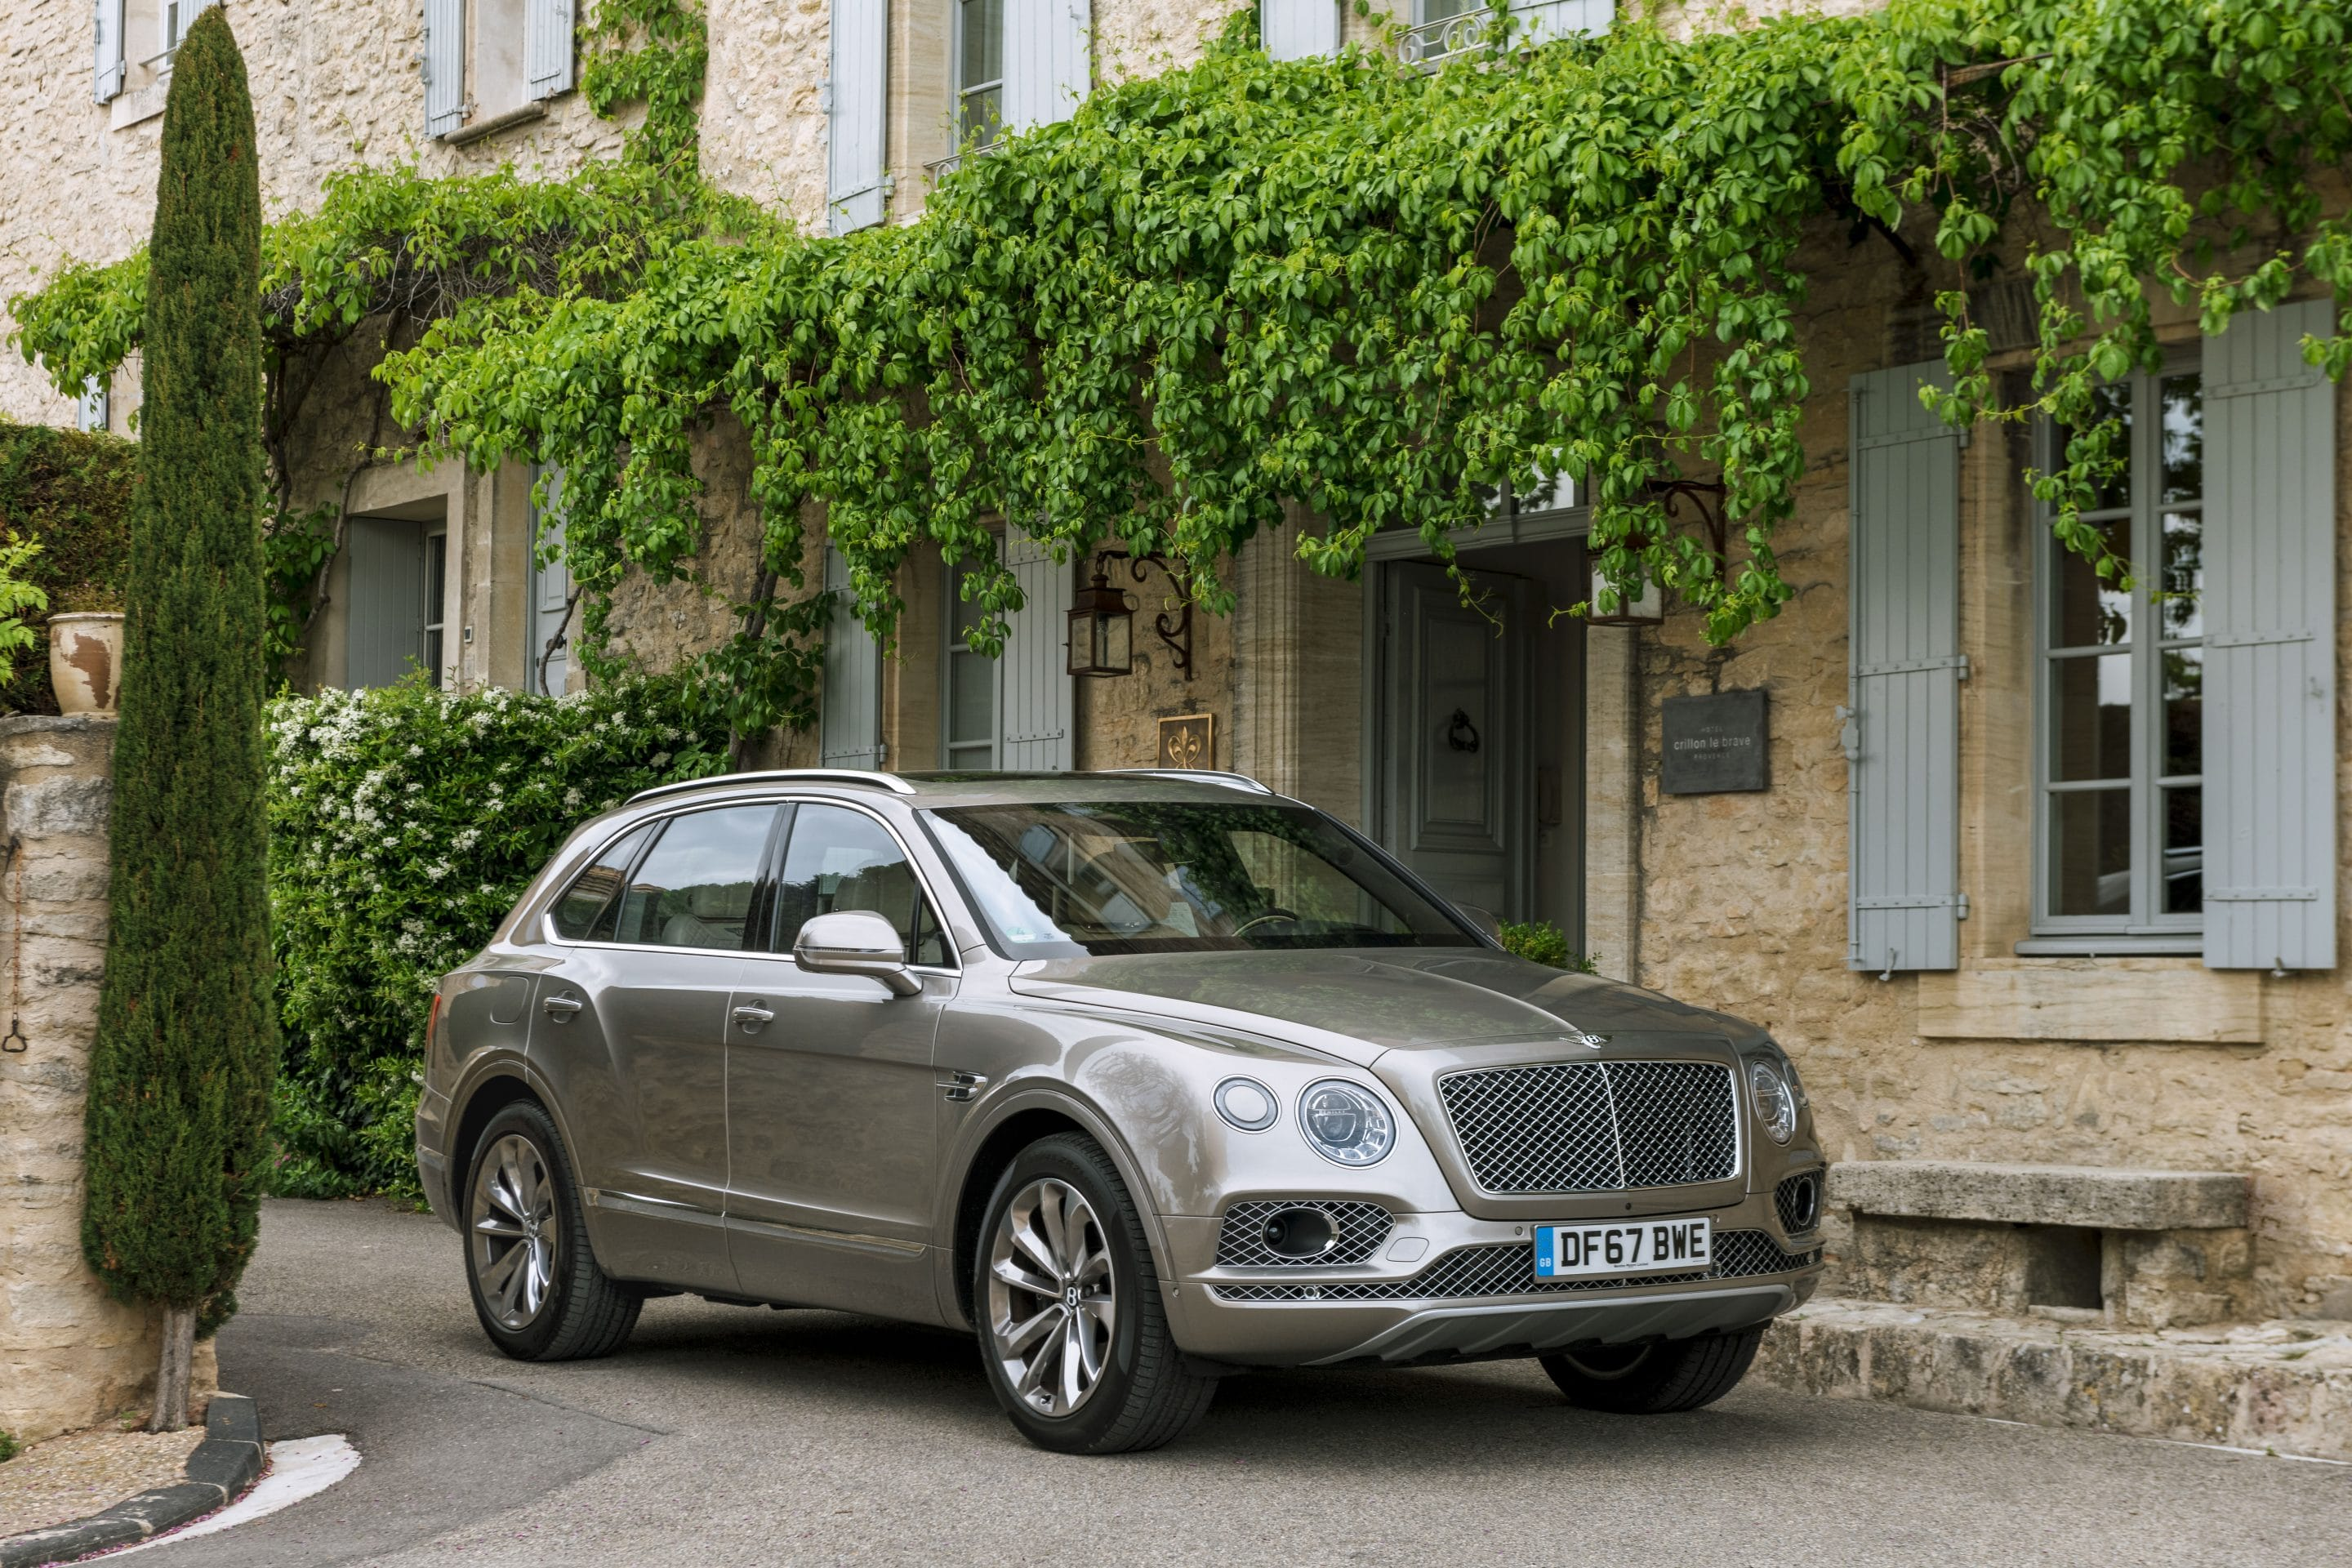 Commercial automotive photography of a Bentley Bentayga and cyclist Adrian Timmis by photographer Michael Schauer for Bentley Motors in the Provence region of south France